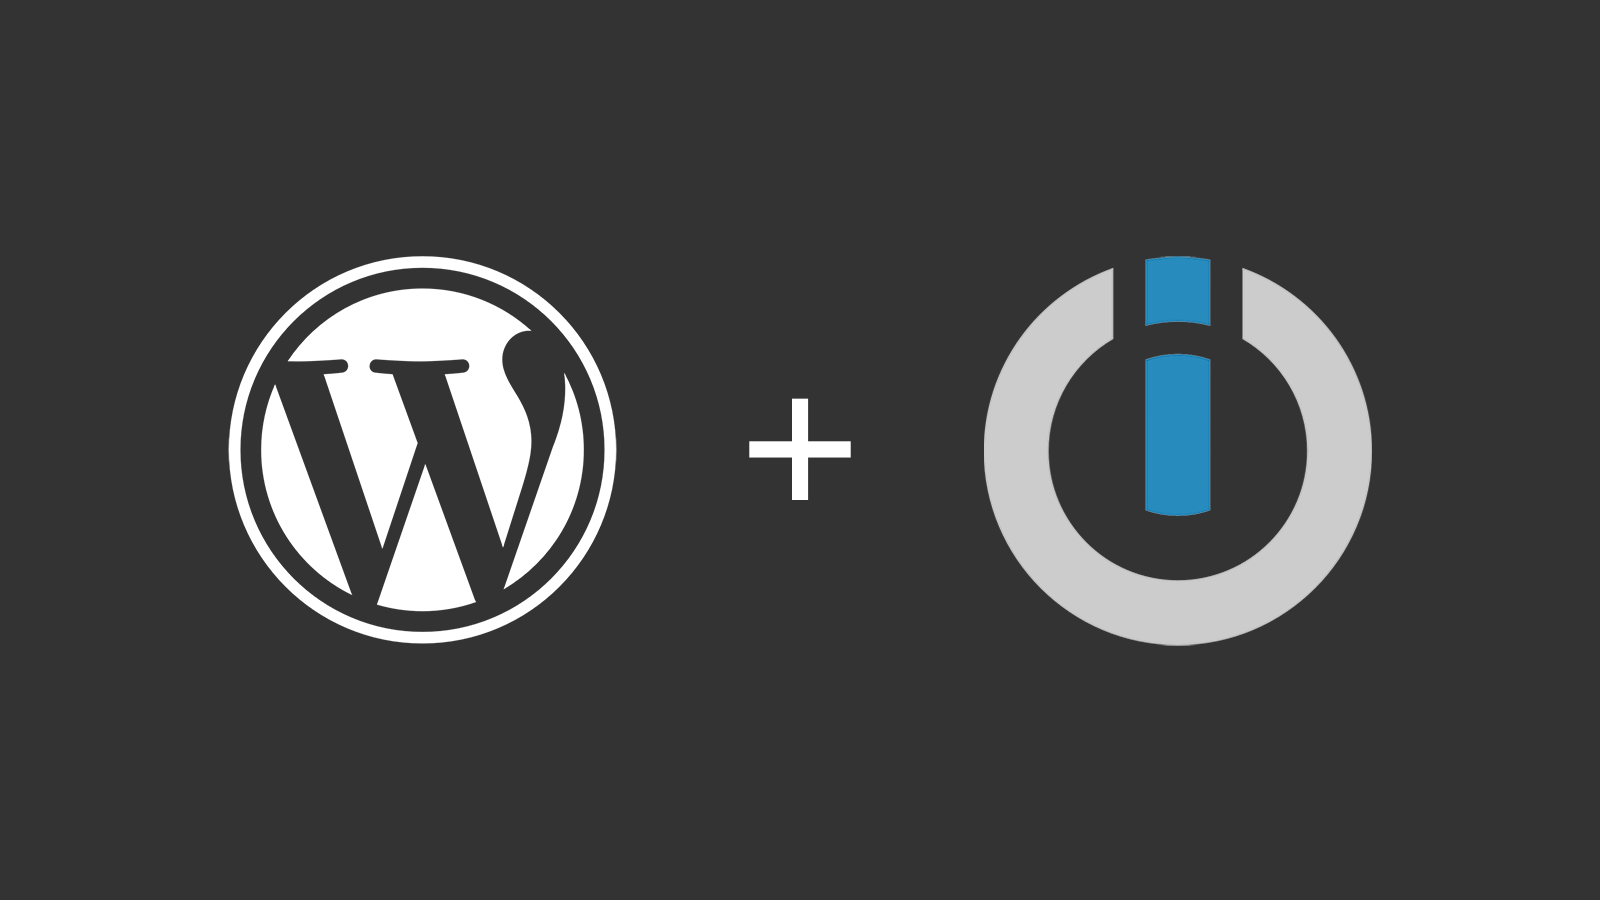 wordpress + integromat